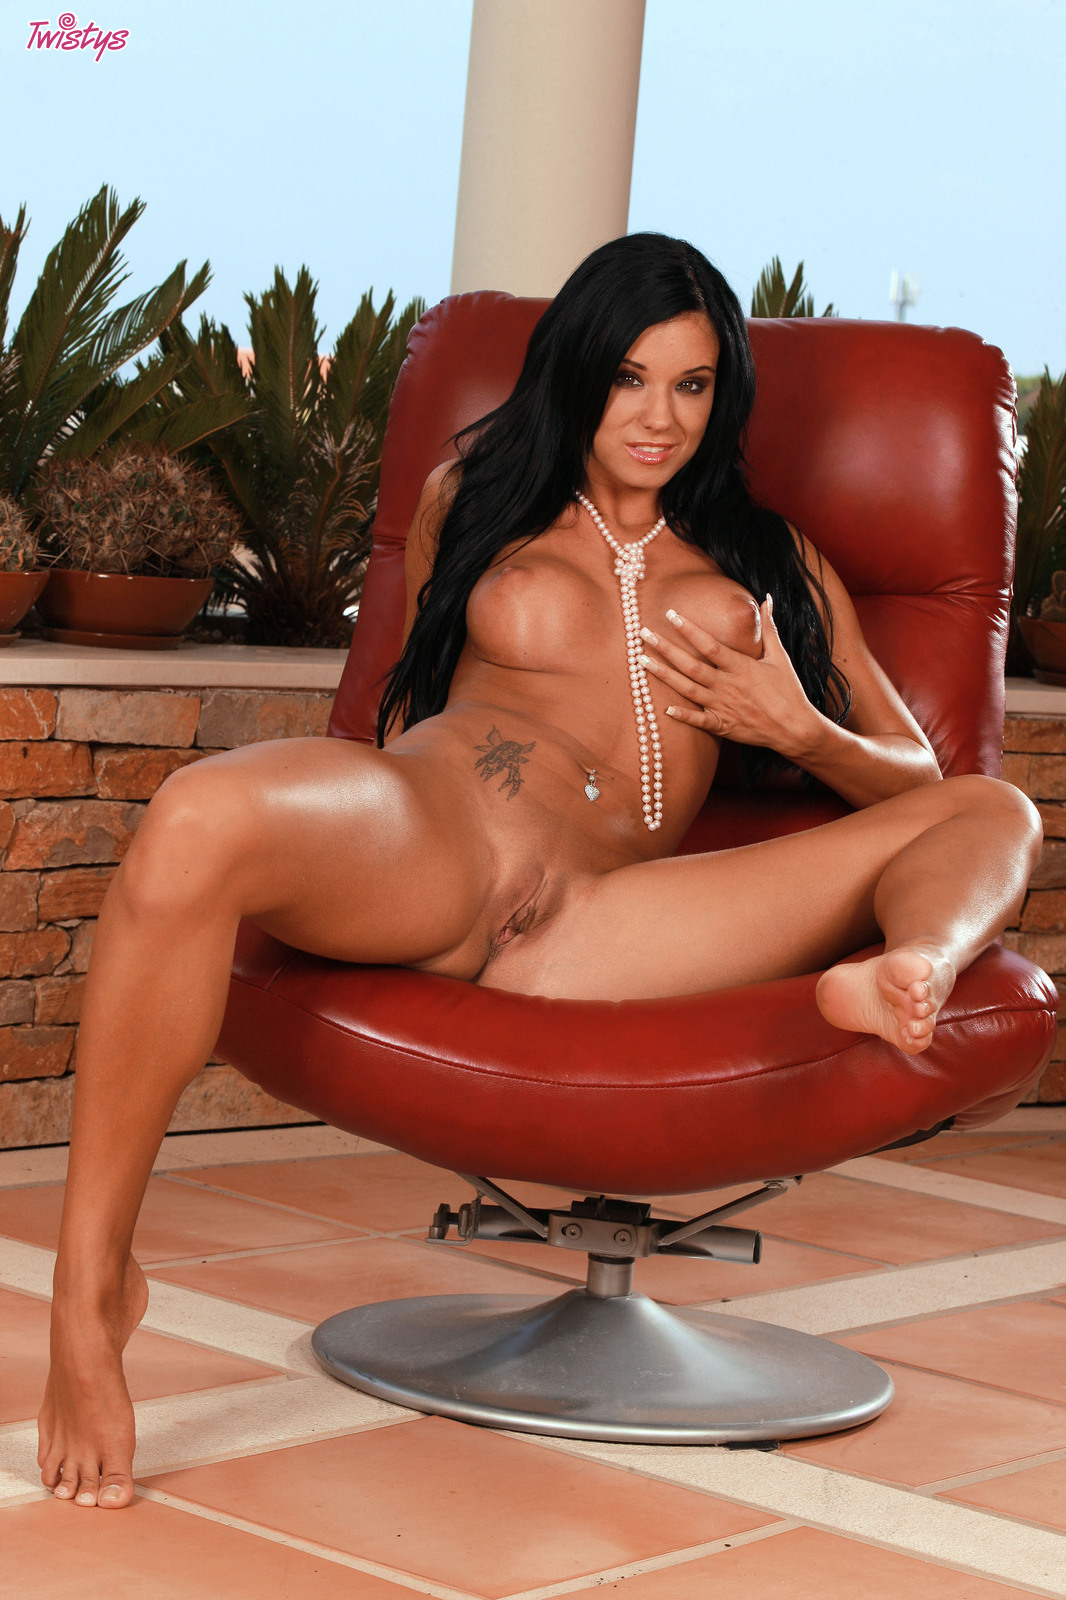 Awesome Ashley Porn Pics awesome brunette slut ashley putting finger in her tight ass